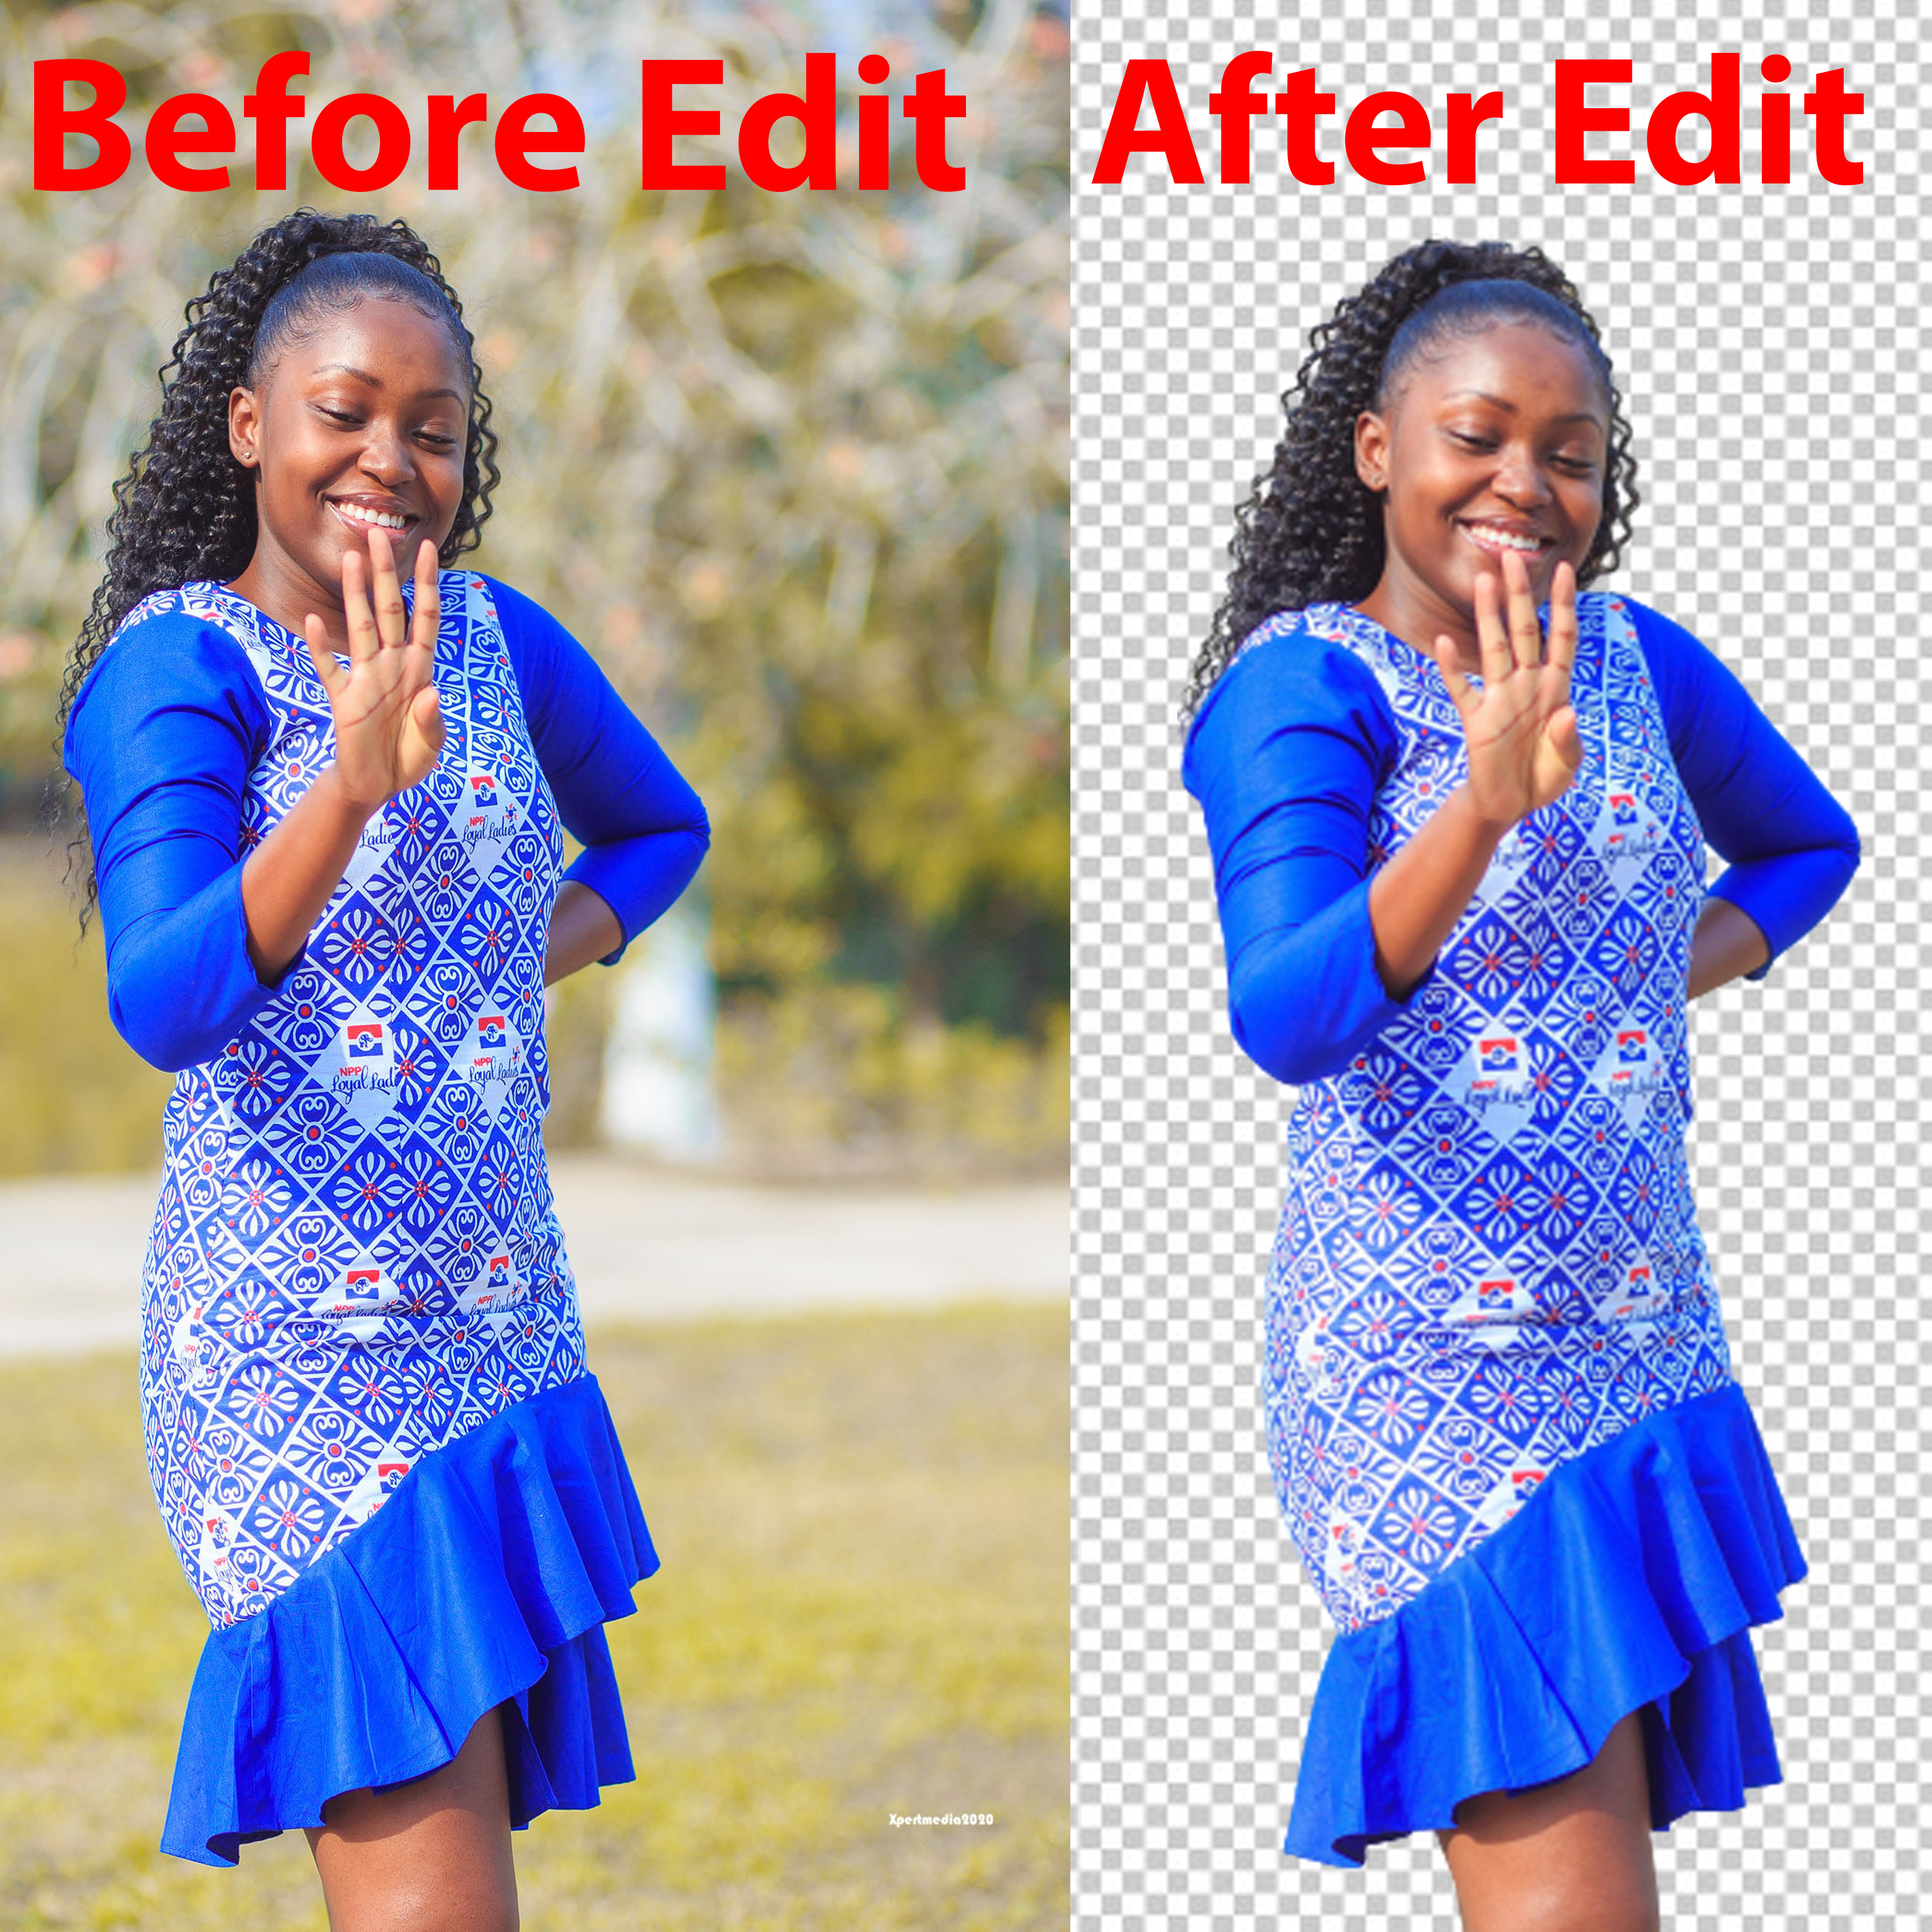 I will urgent professionally background remove.